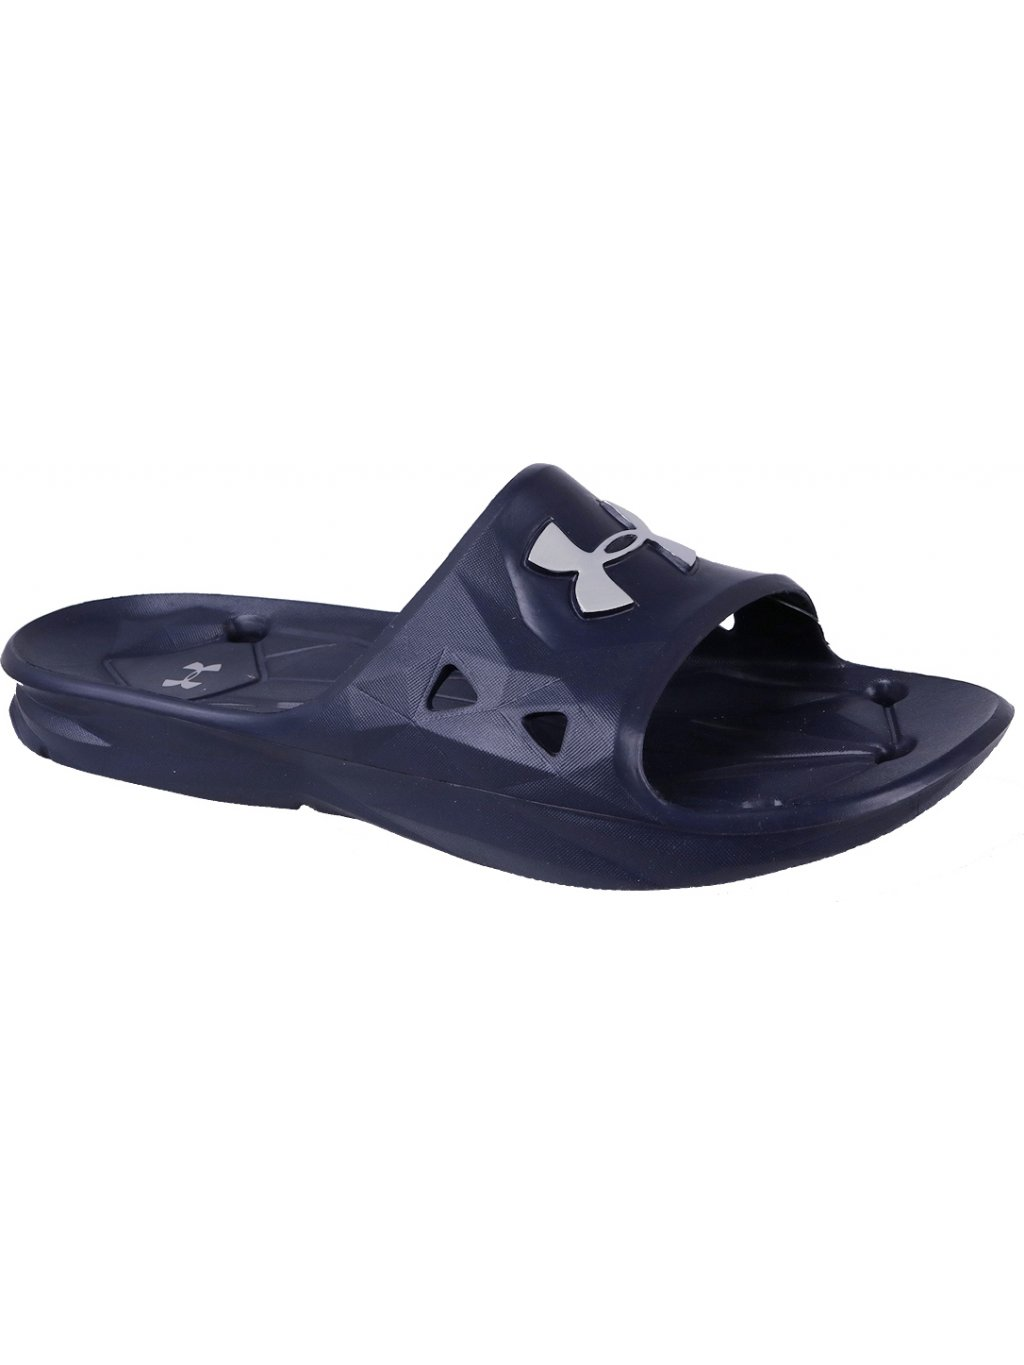 UNDER ARMOUR LOCKER III SLIDES 1287325-410